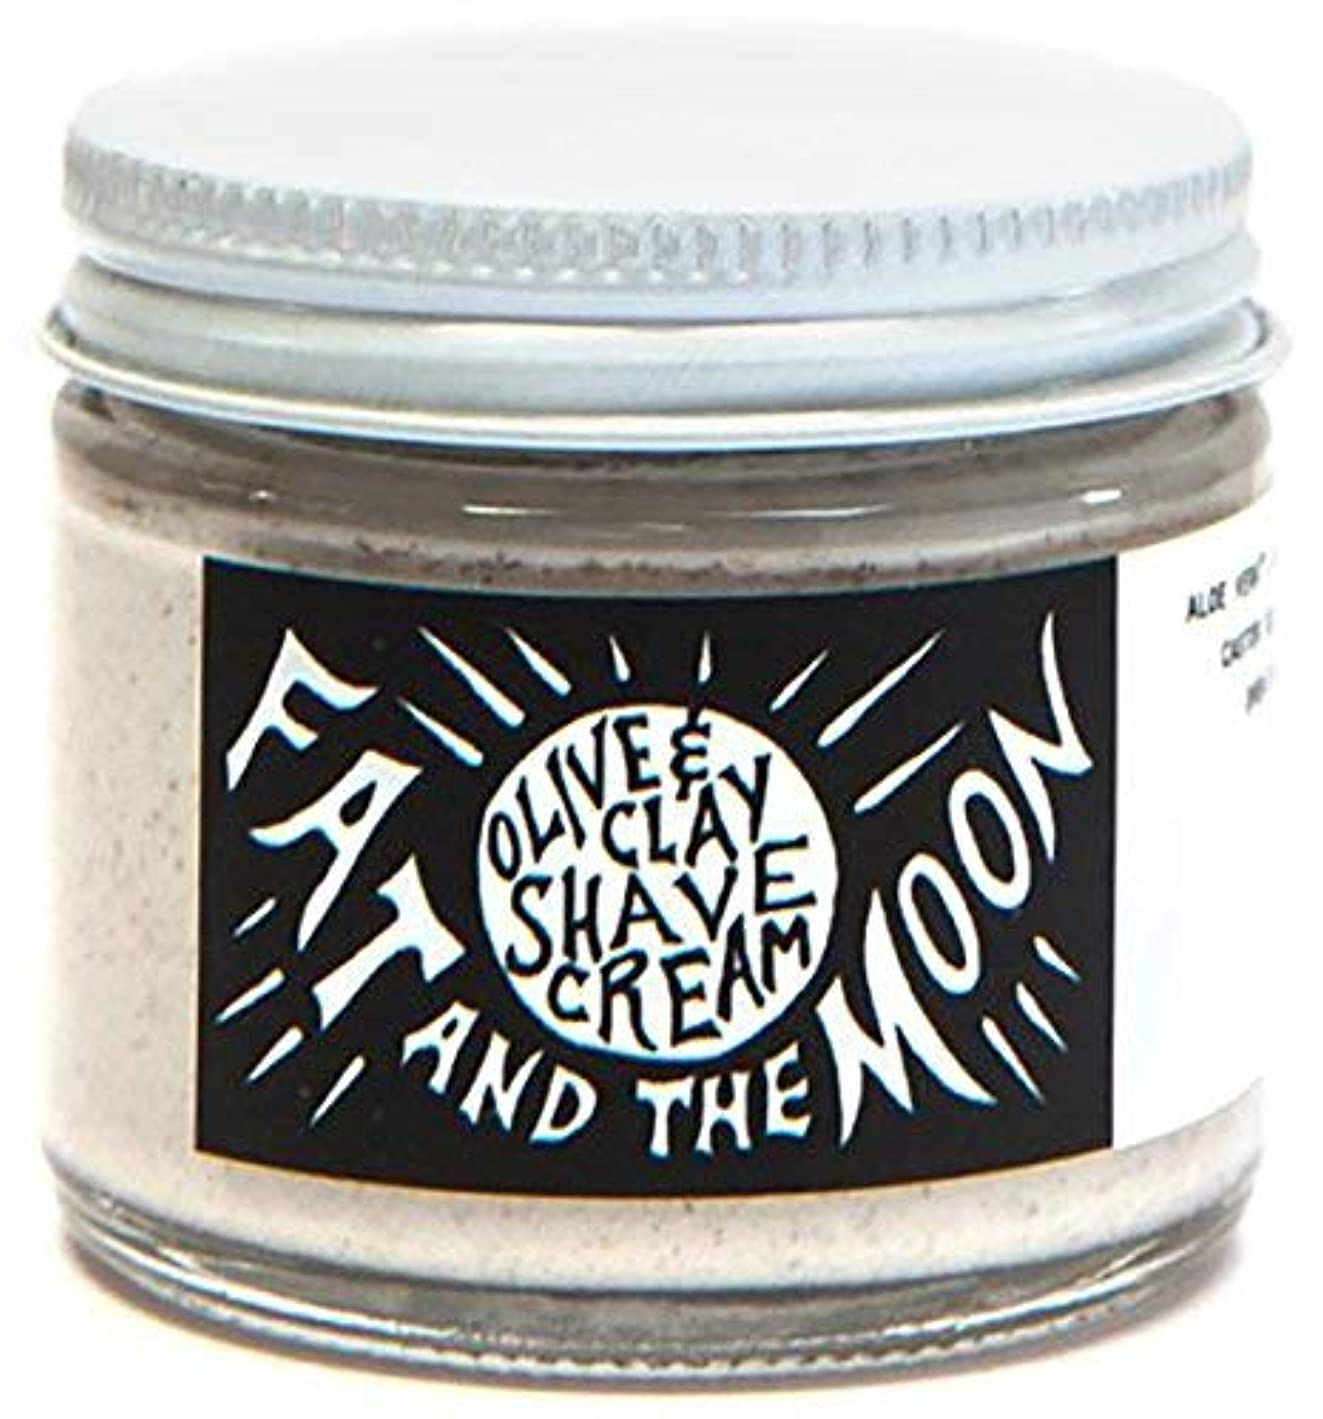 湖流行施しFat and The Moon - All Natural Olive & Clay Shave Cream (2 fl oz) [並行輸入品]